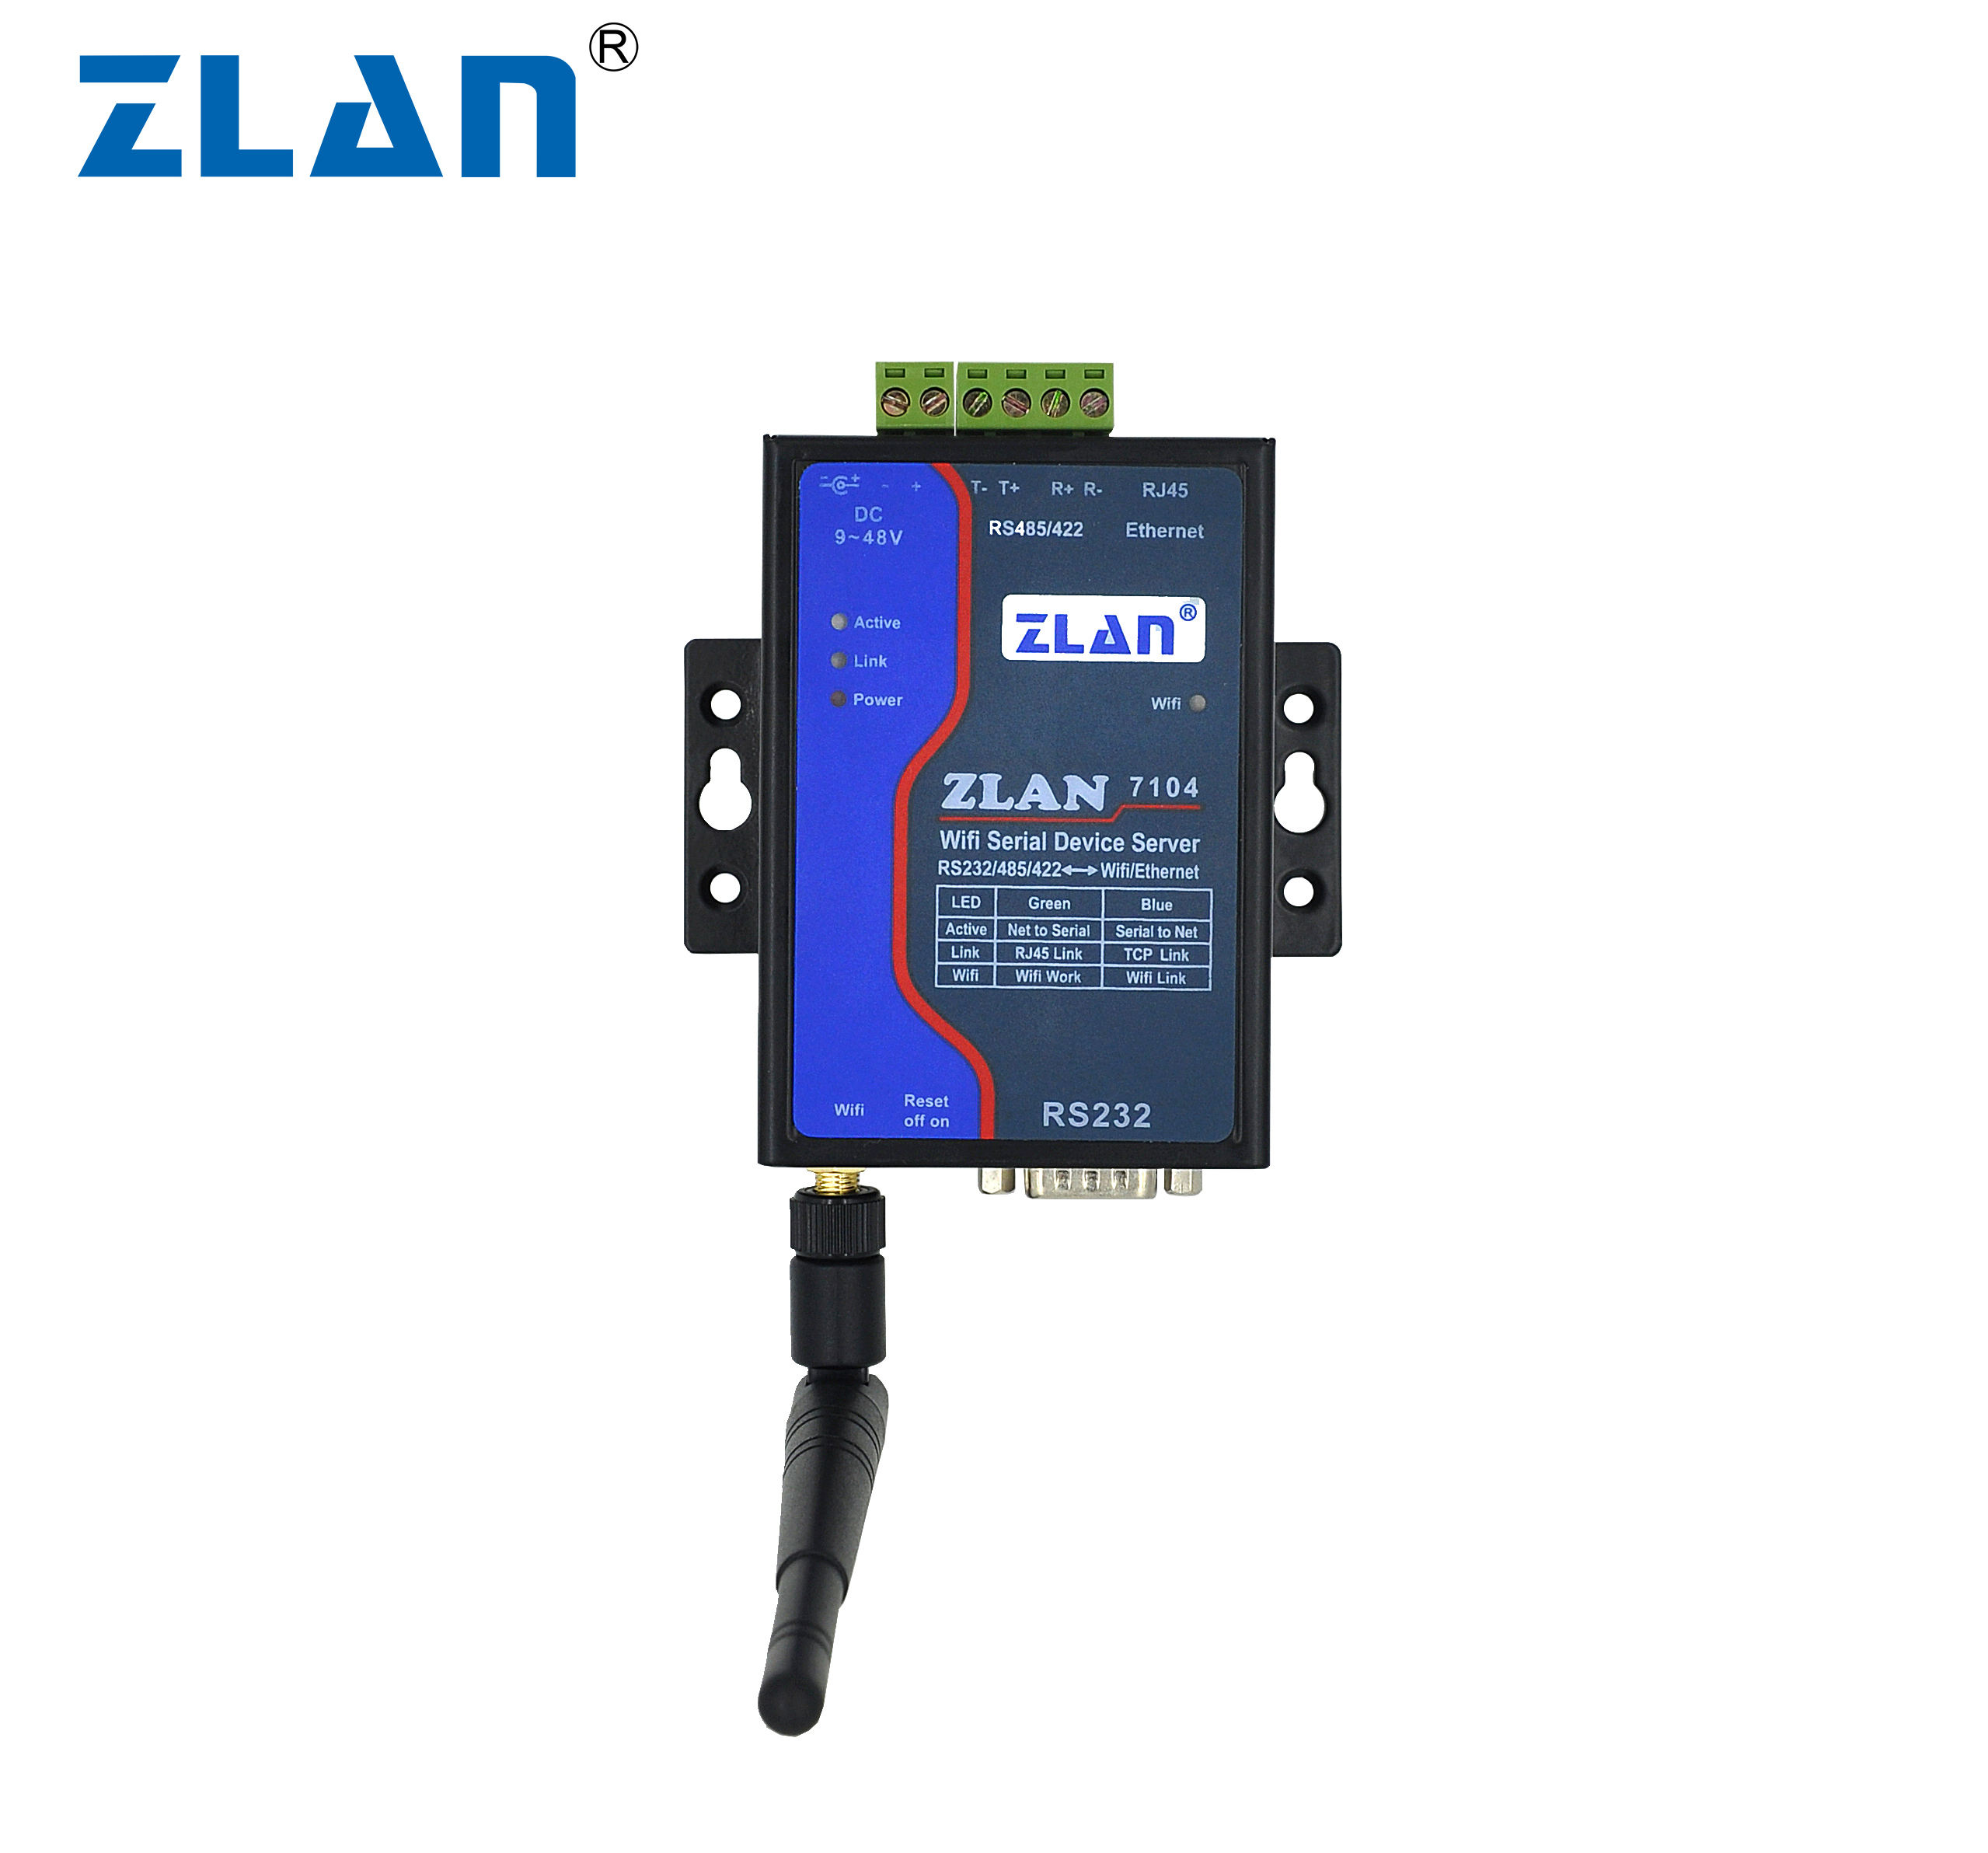 ZLAN7104 modulo WIFI RJ45 Ethernet a RS232 RS485 RS422 Convertitore wireless Serial Device Server